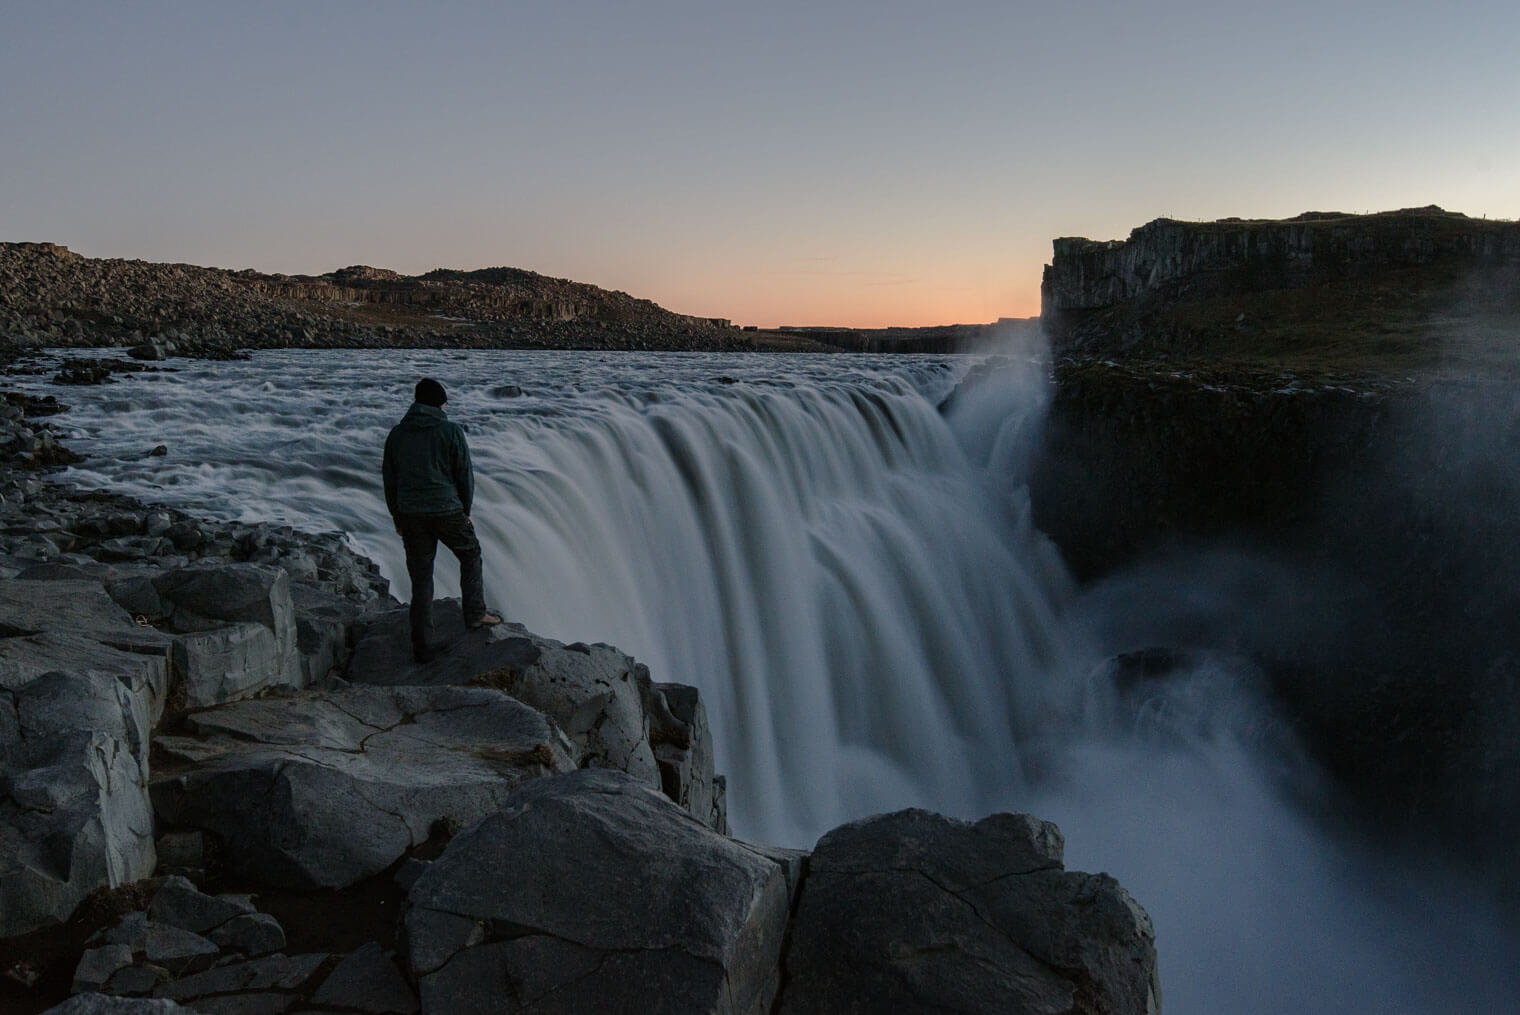 Northlandscapes Photography - Jan Erik Waider (Dettifoss, Iceland)